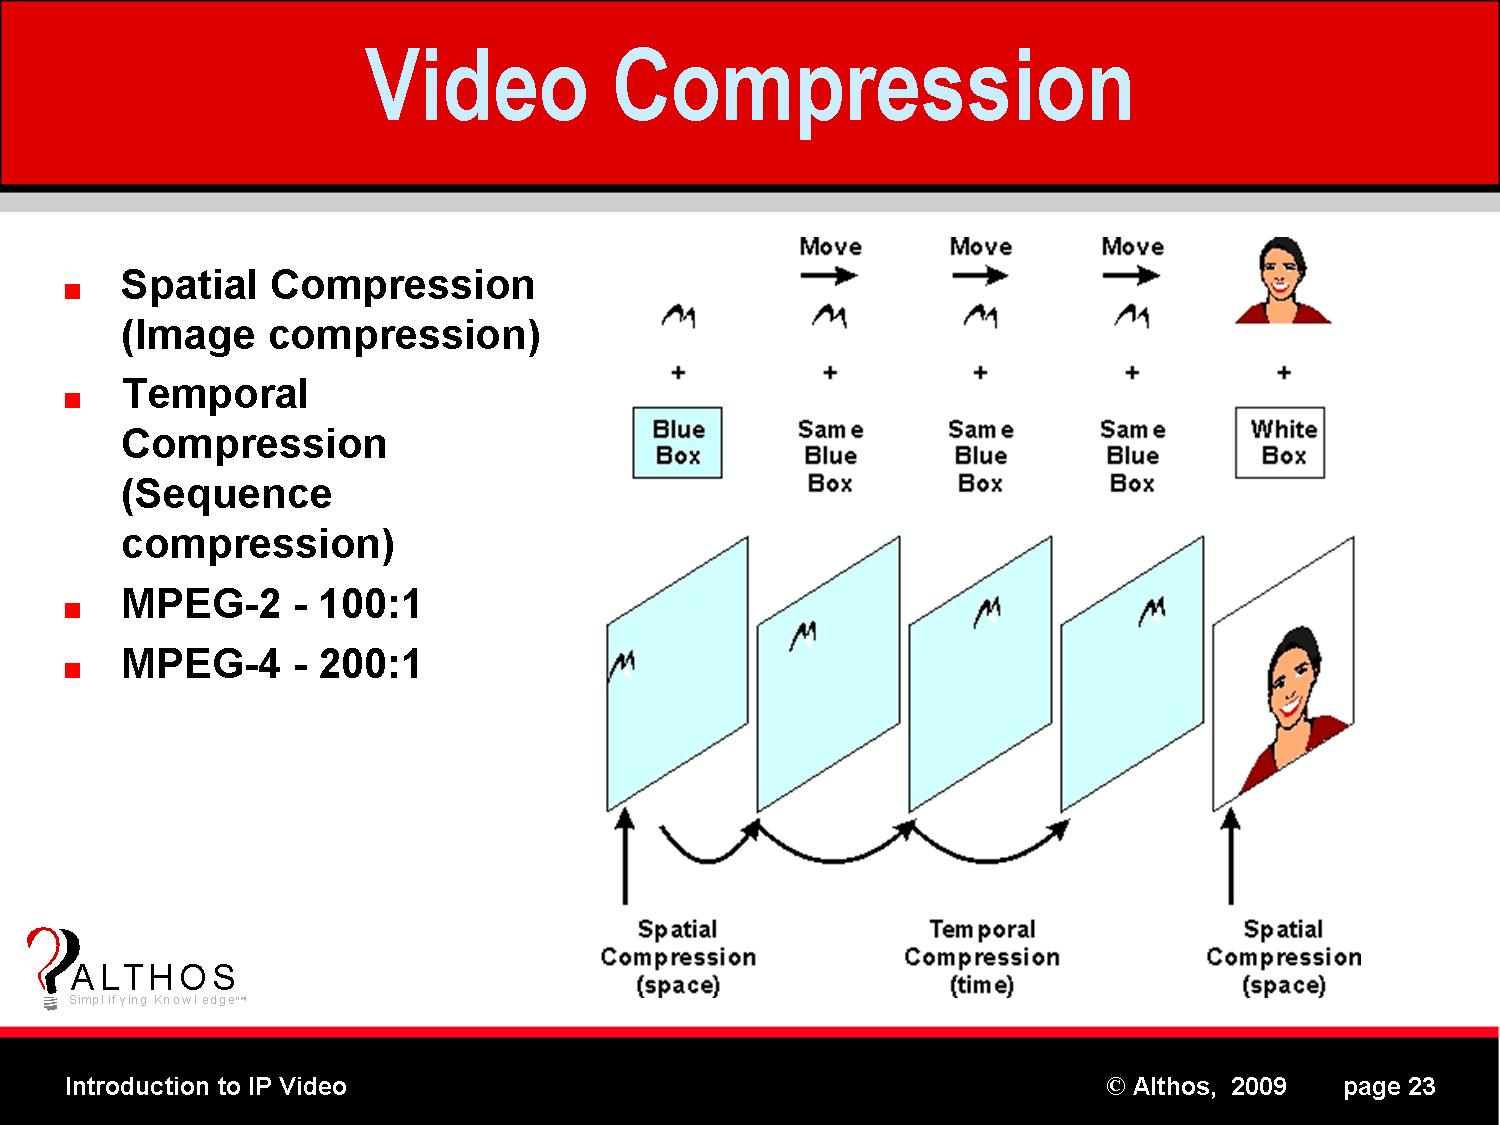 digital video compression standards: